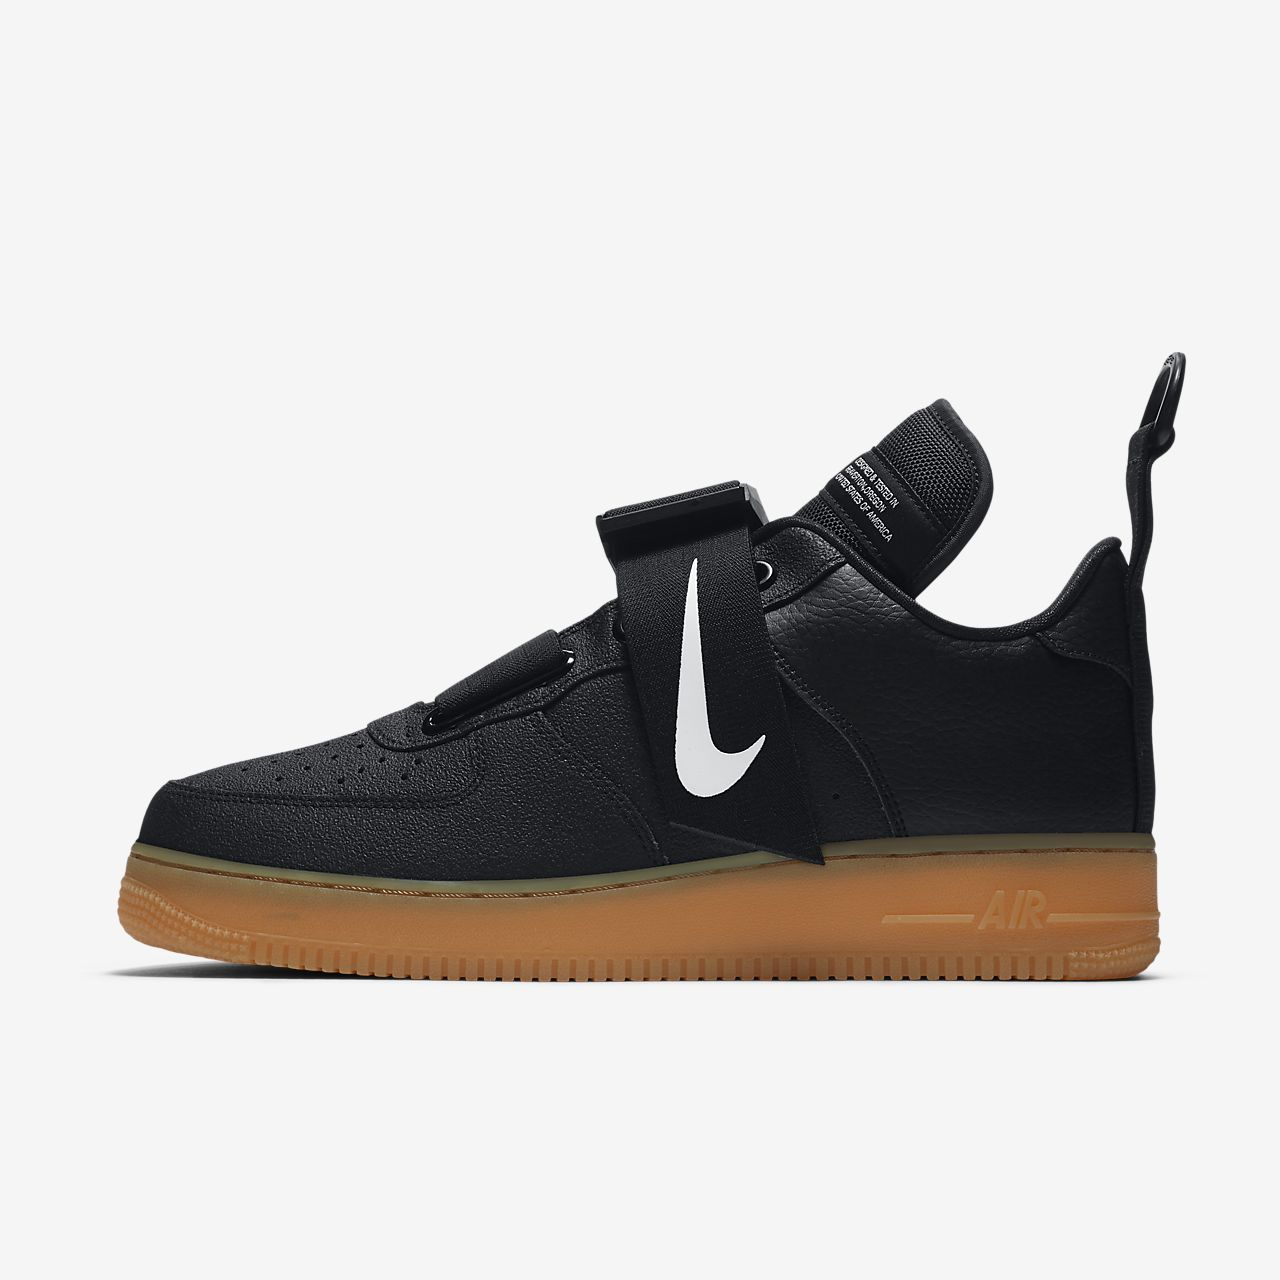 Pour 1 Be Utility Nike Force Chaussure Air Homme qpXTvw8w